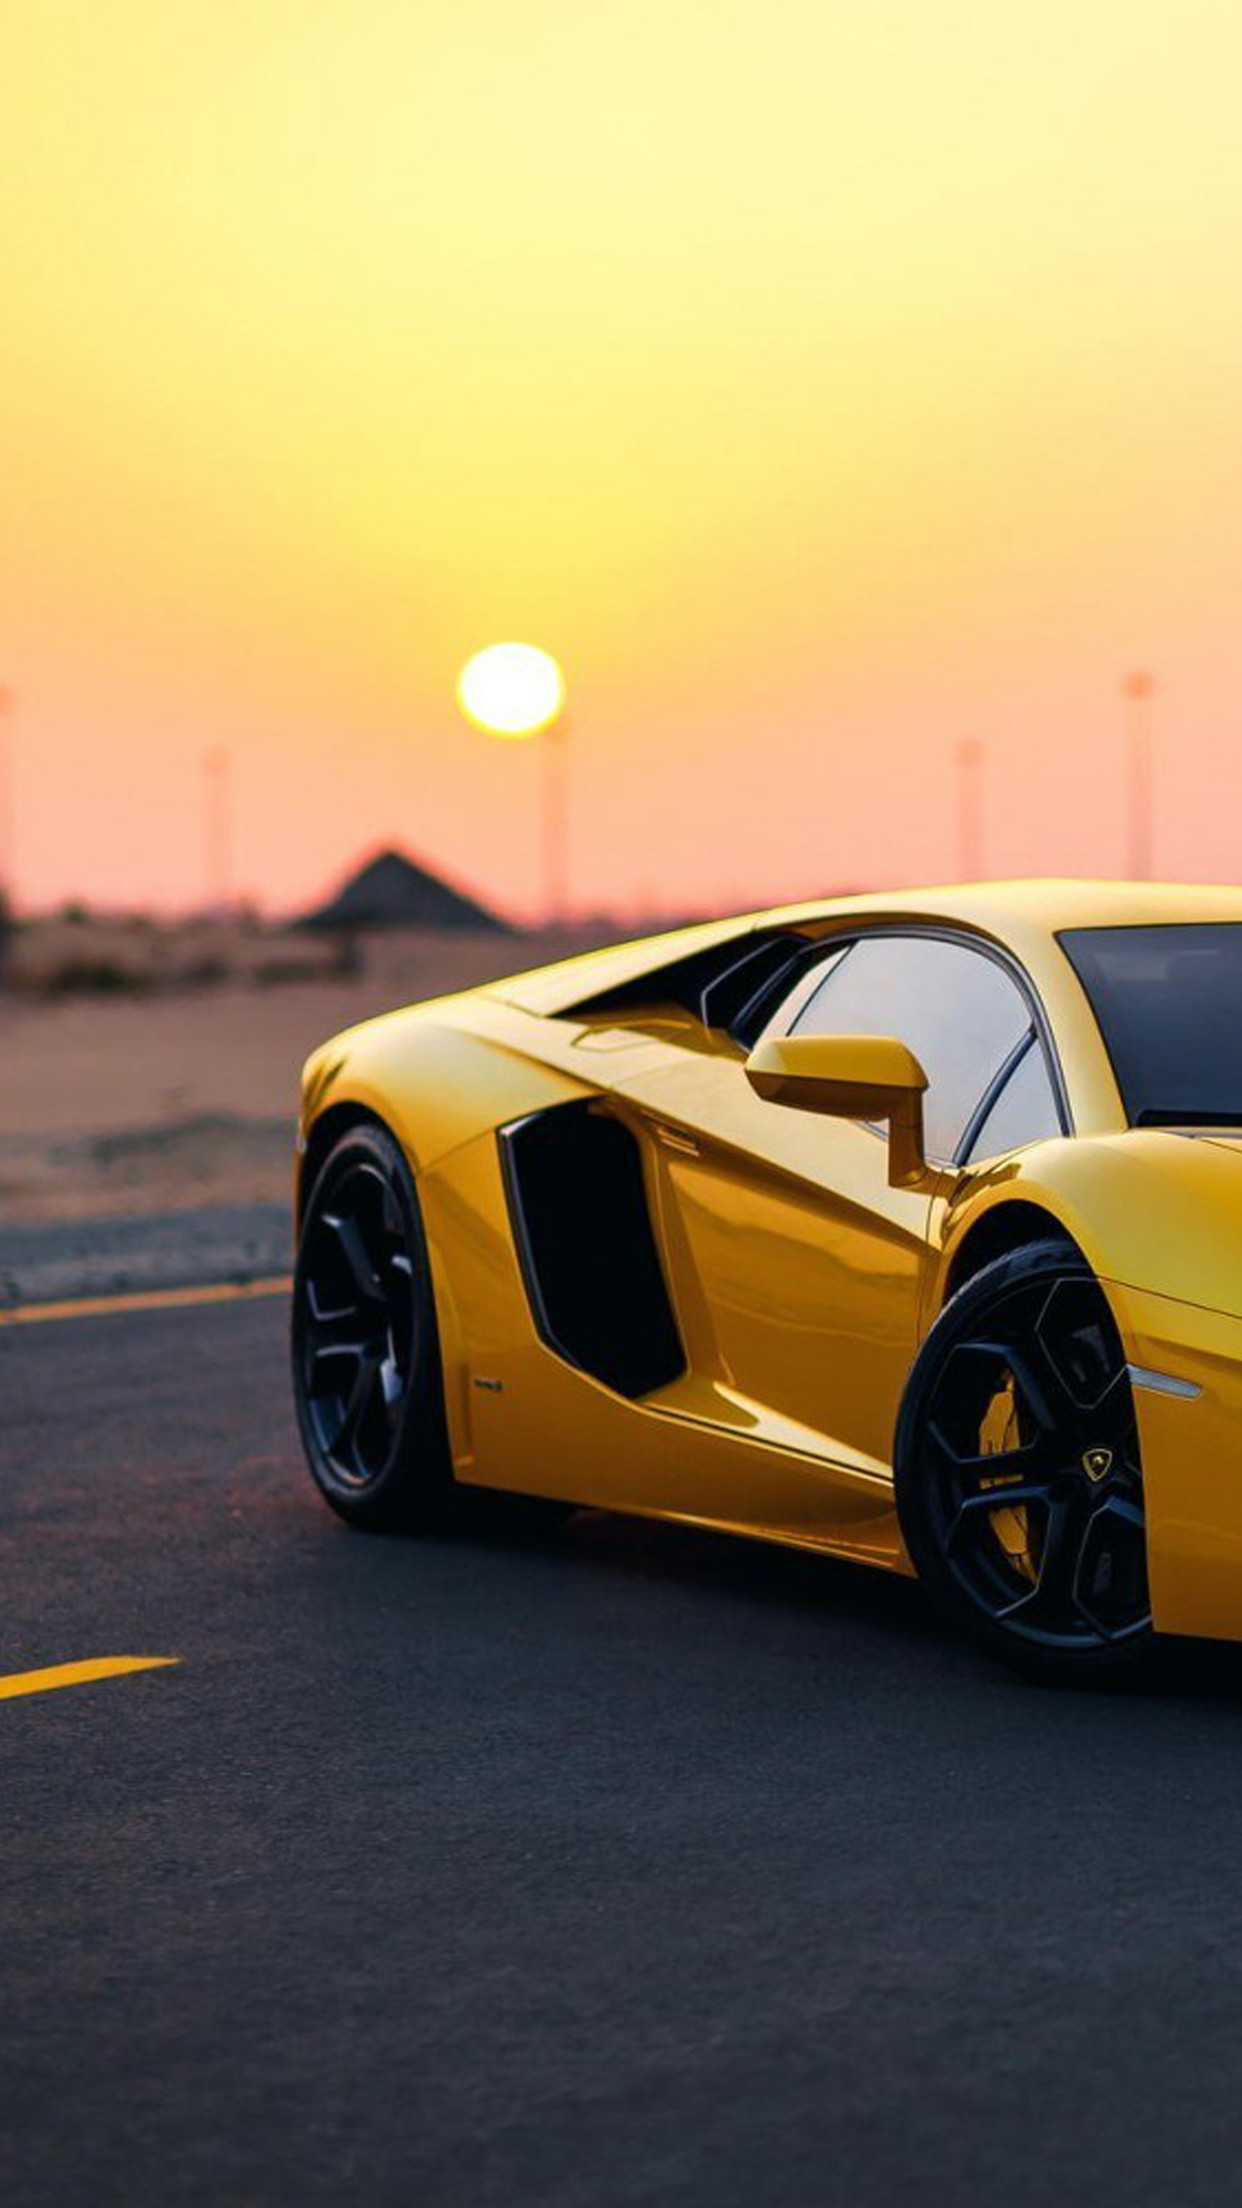 Wallpaper Supercars 67 Images